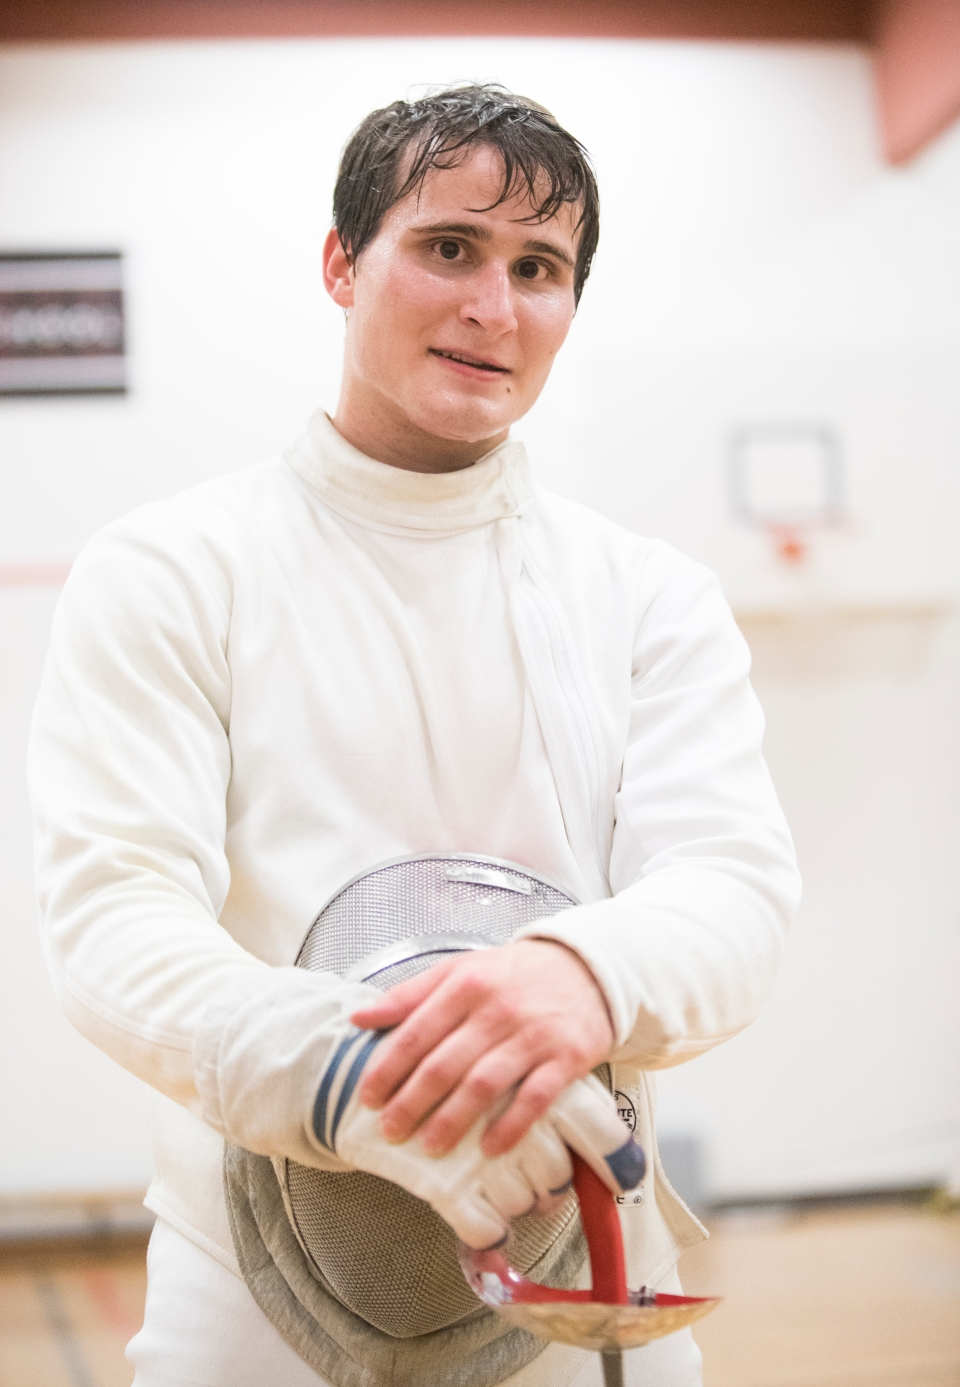 4 Hunter Moricz Zbigniew Pietrusinski Fencing CBC Petro Canada The Bond Kevin Light Photo